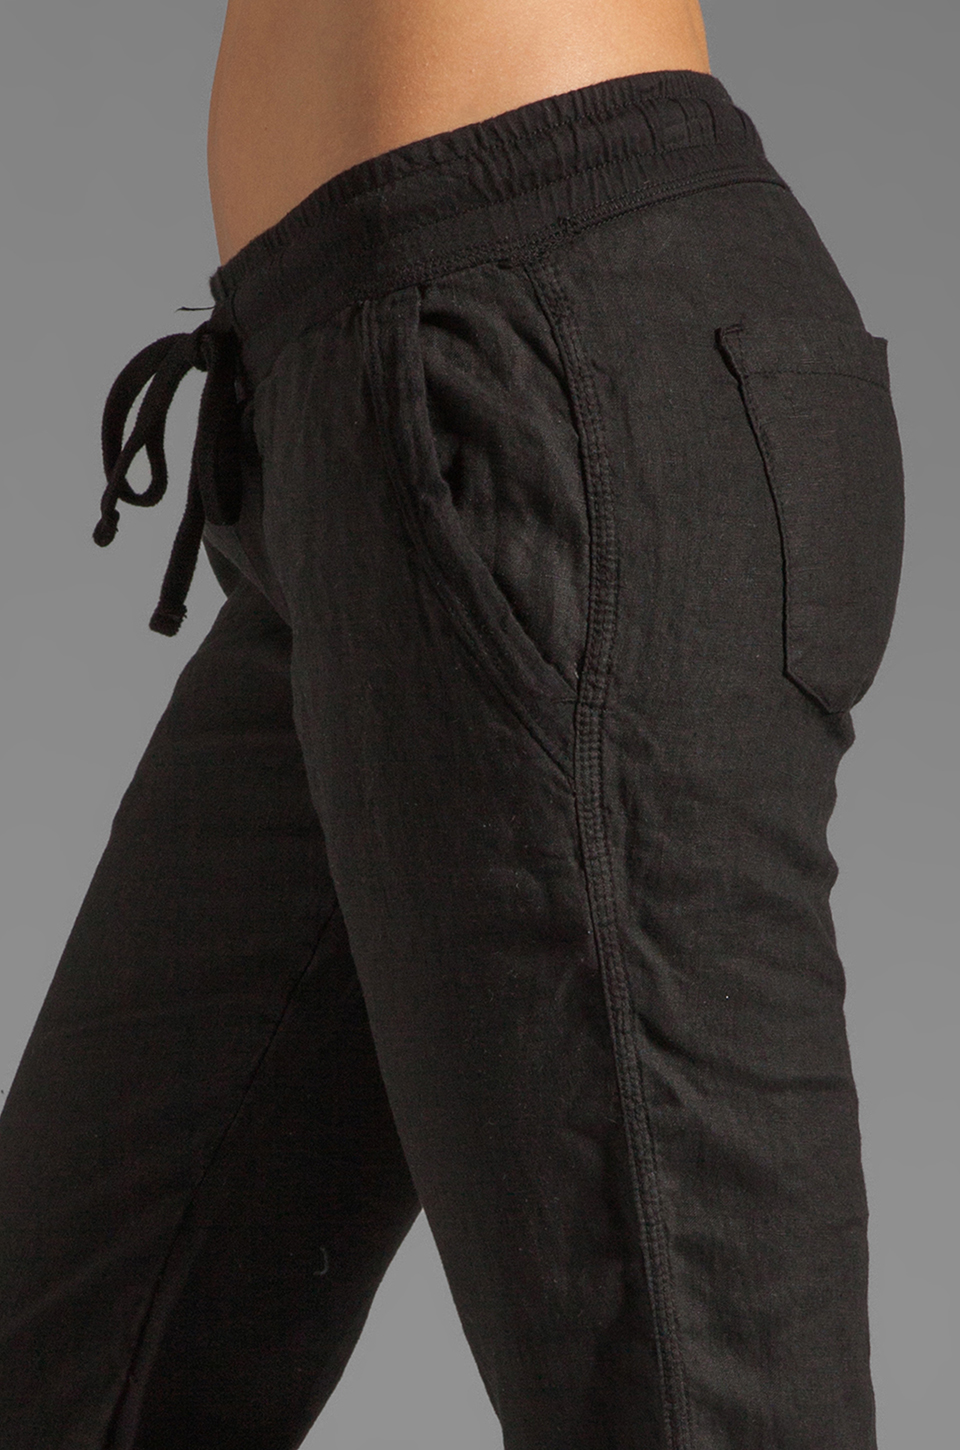 James Perse Tailored Linen Pant in Black